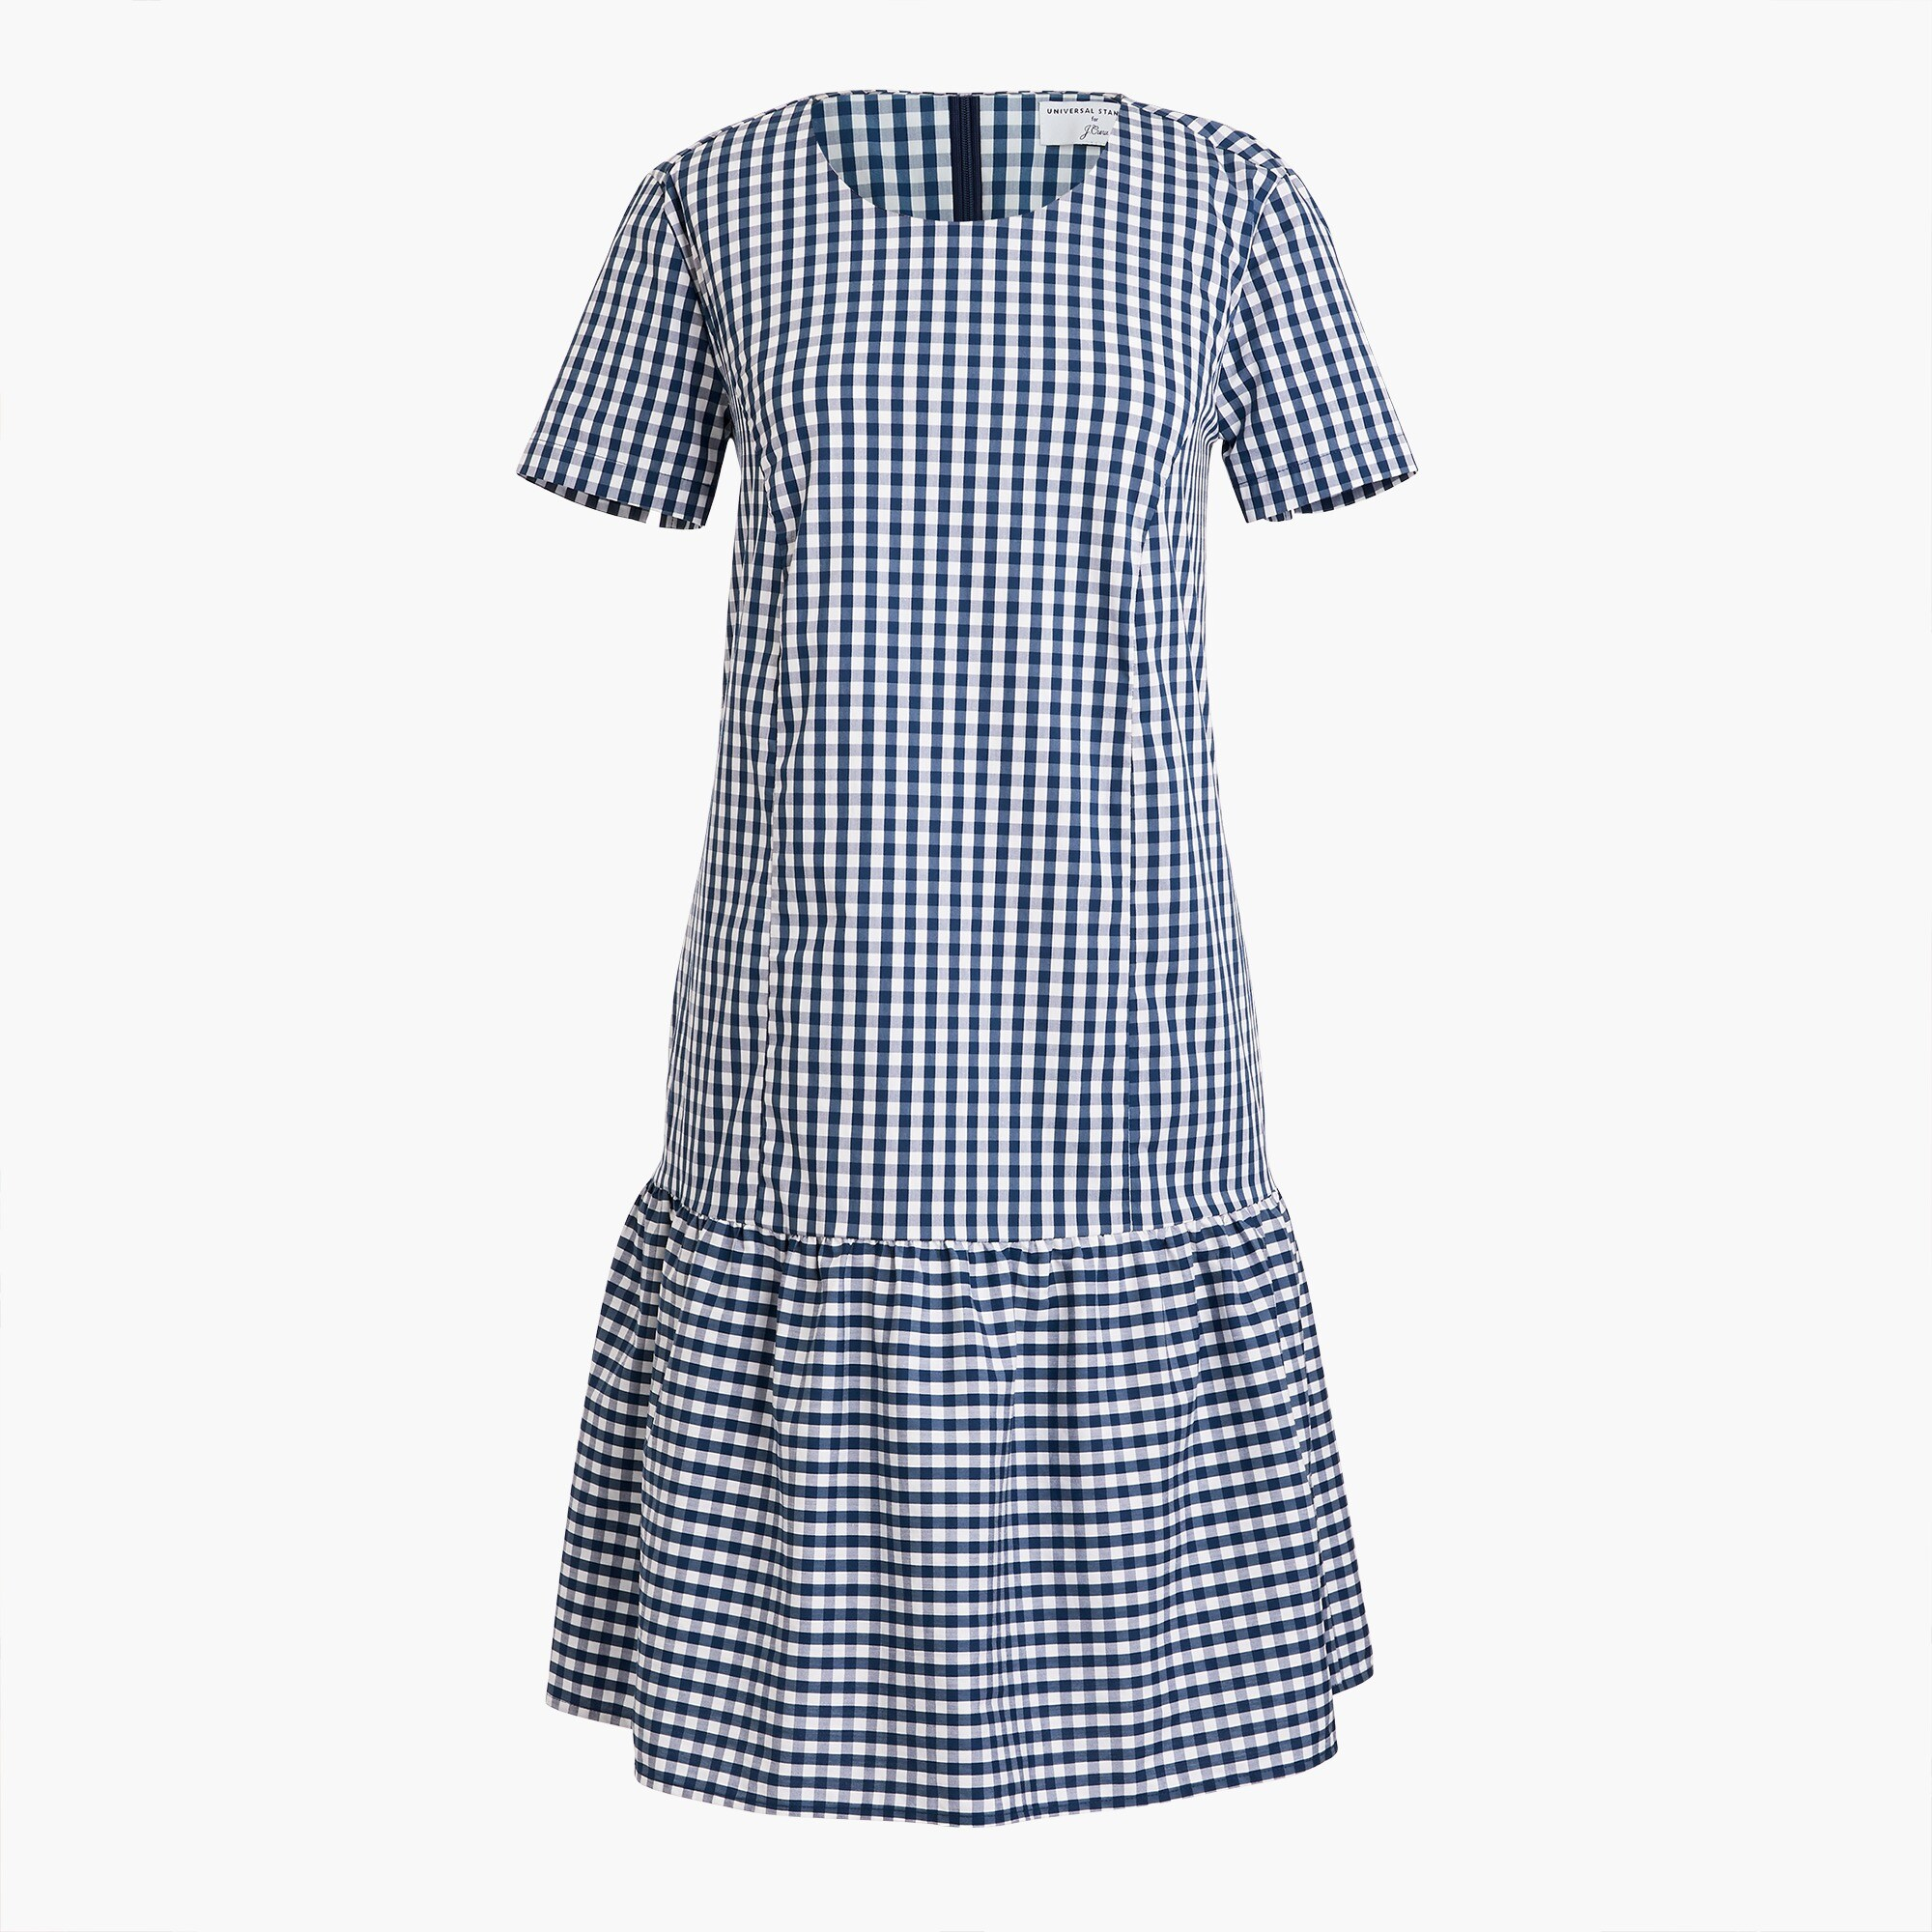 Universal Standard for J.Crew poplin drop-waist dress in gingham